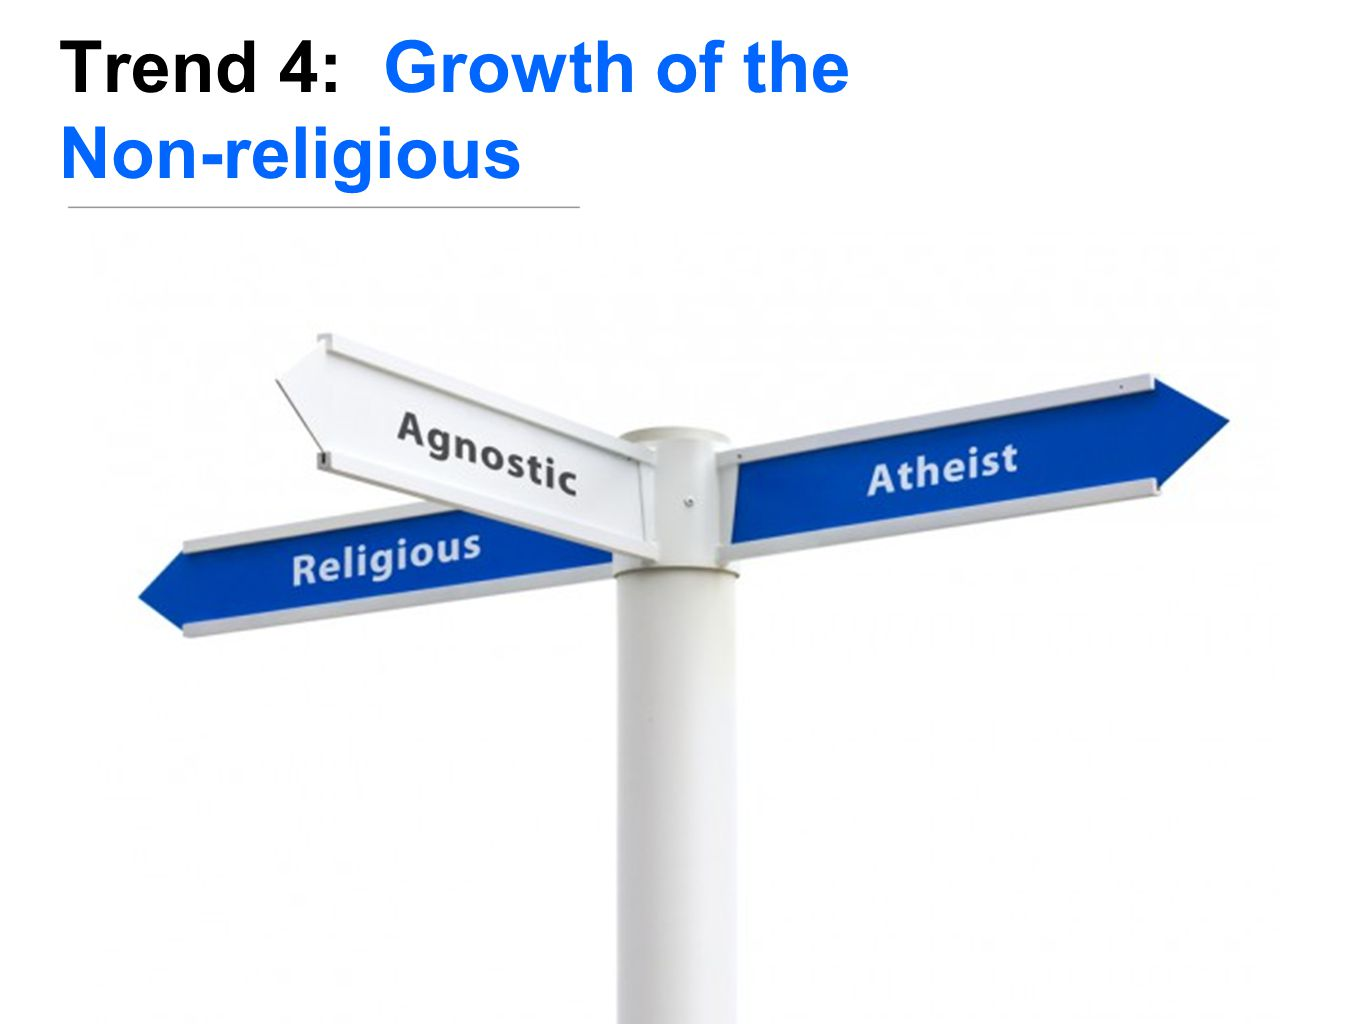 July 2, 2013 Survey by www.pewforum.org  1/3 of adults under age 30 are religiously unaffiliated  1/5 of adults age 18+ have no religious affiliation  2/3 of Americans (religious and irreligious) say that religion is losing its influence in America  55% of the unaffiliated say the trend doesn't make much difference for our society